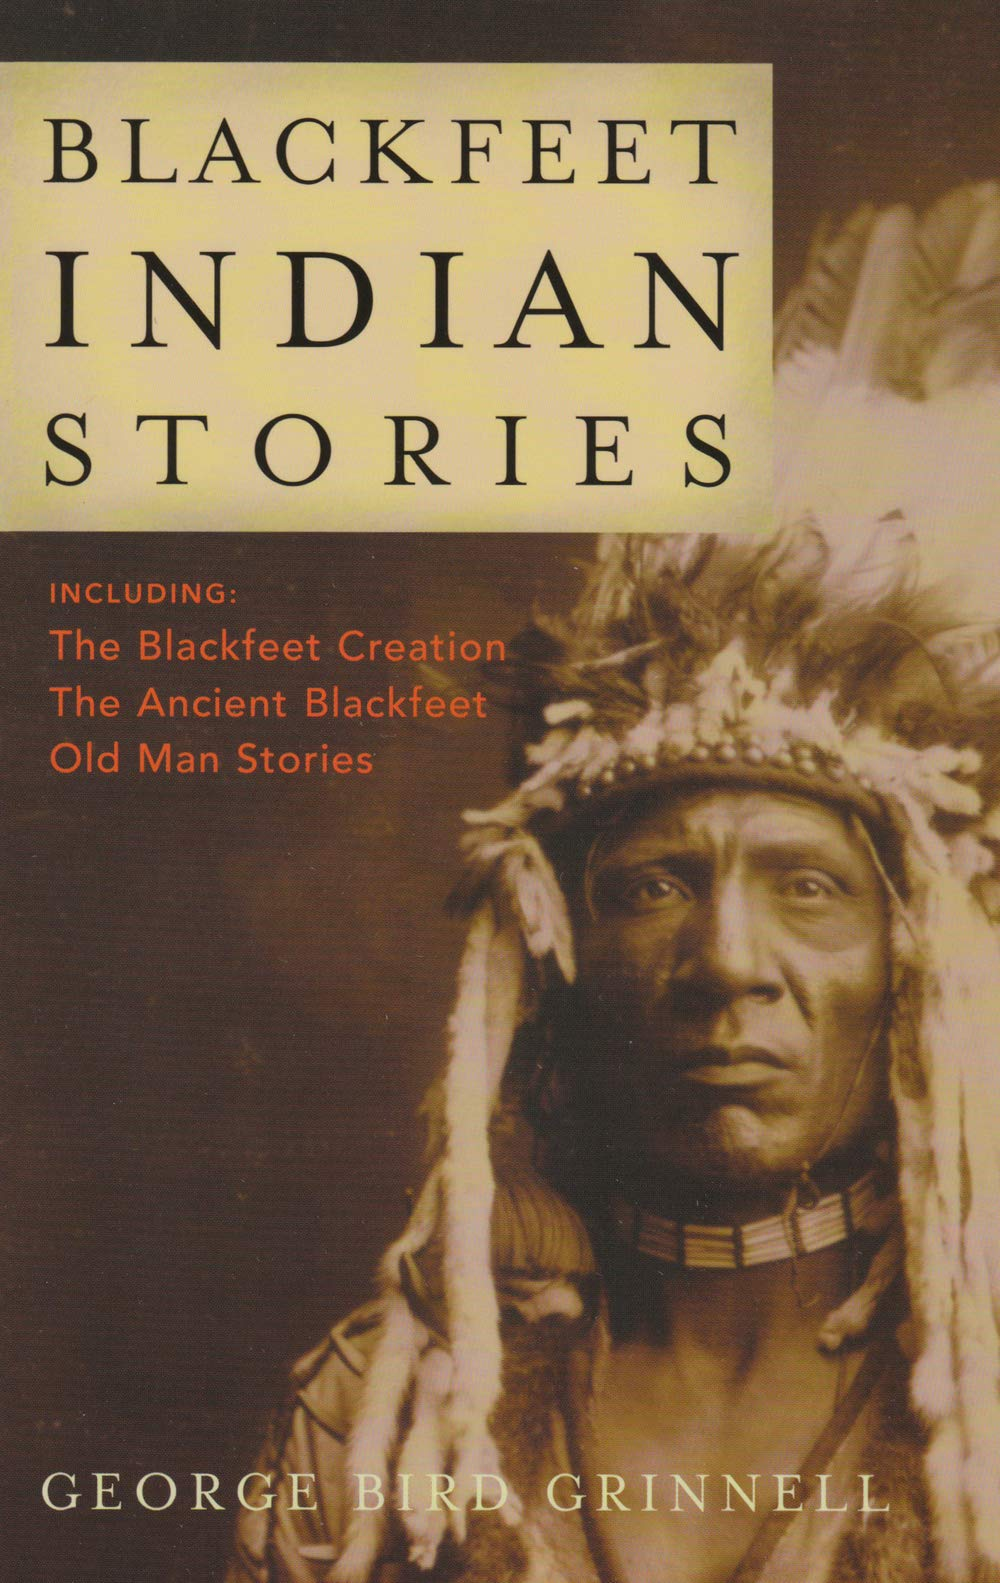 Blackfeet Indian Stories: George Bird Grinnell